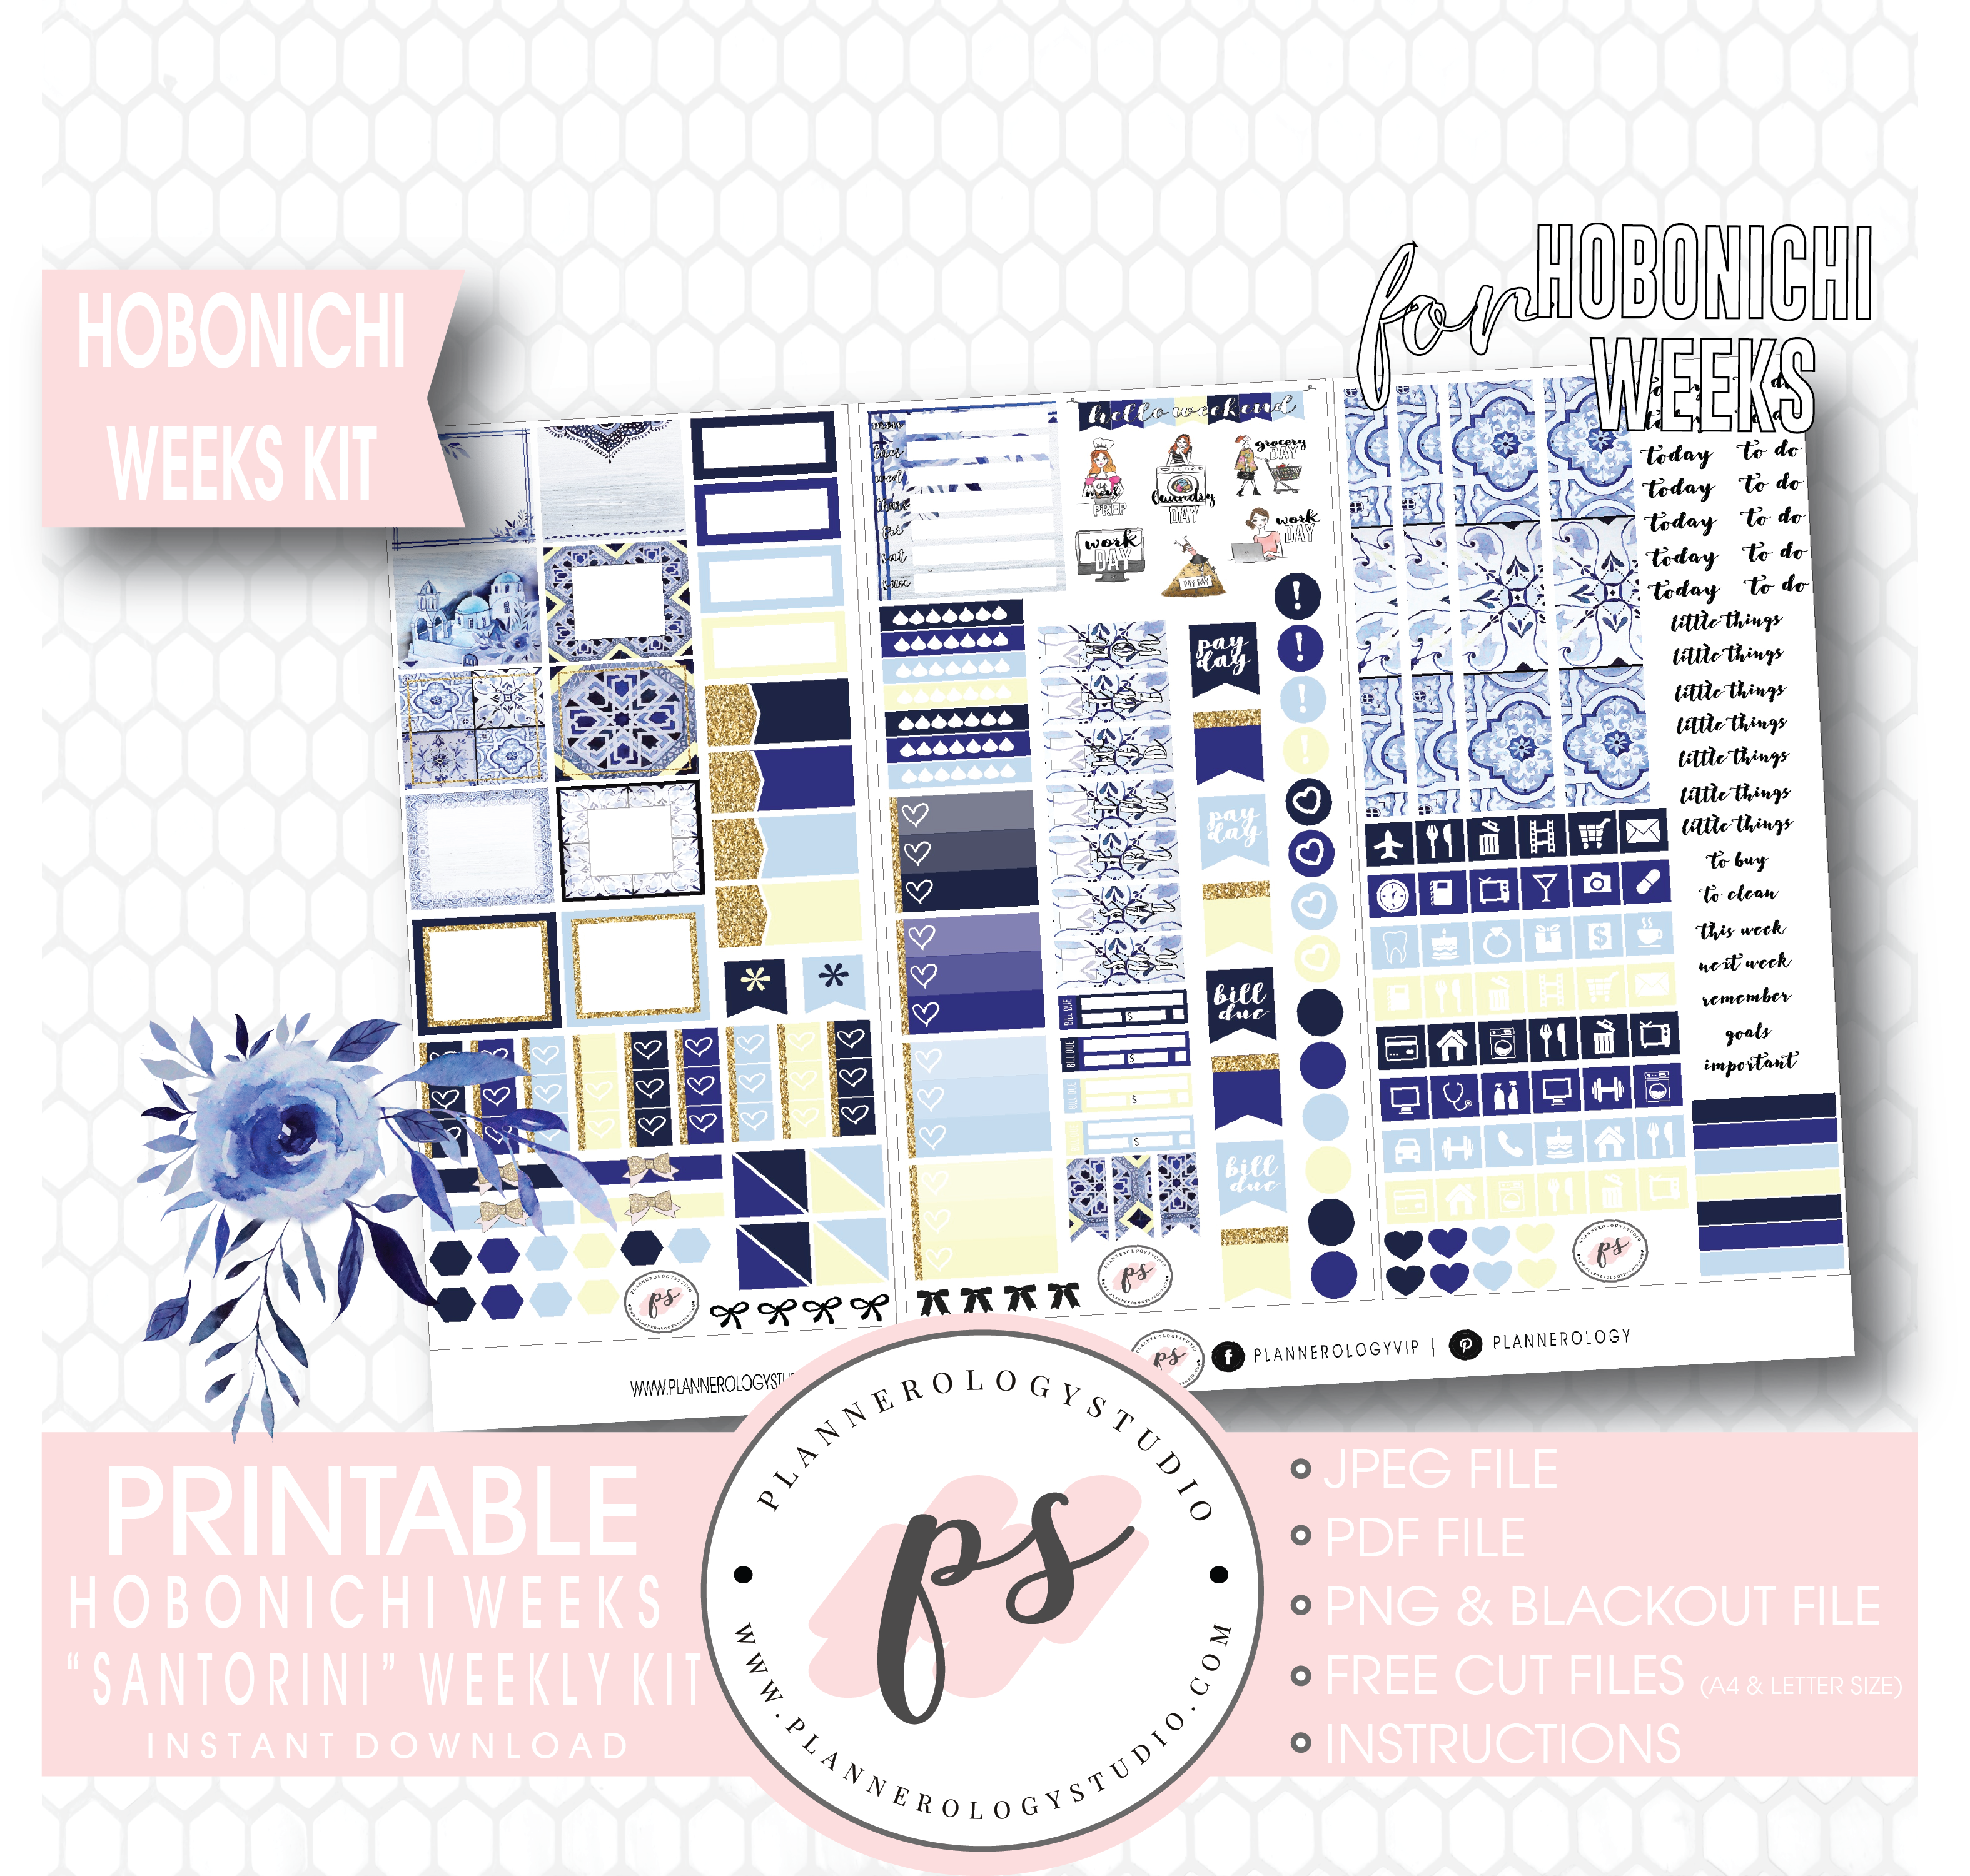 photograph about Free Digital Planner Pdf called Santorini Weekly Package Printable Electronic Planner Stickers (for employ the service of with Hobonichi Months)